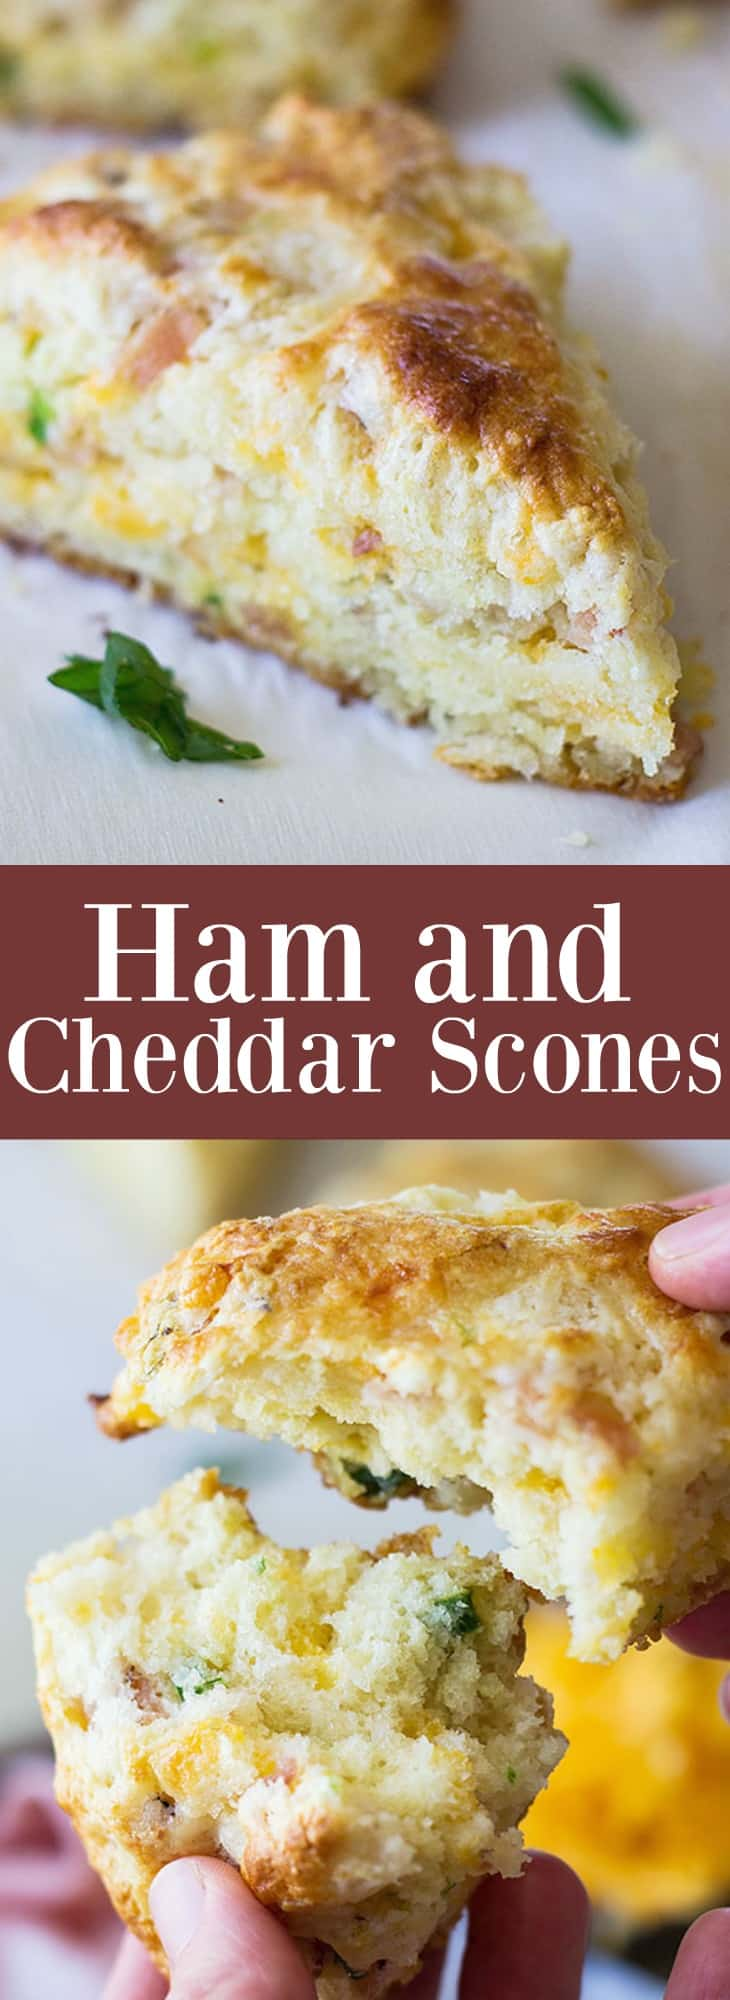 Savory Ham and Cheddar Scones that are easy to make and perfect for breakfast, snack time or with a steaming bowl of soup! | www.countrysidecravings.com